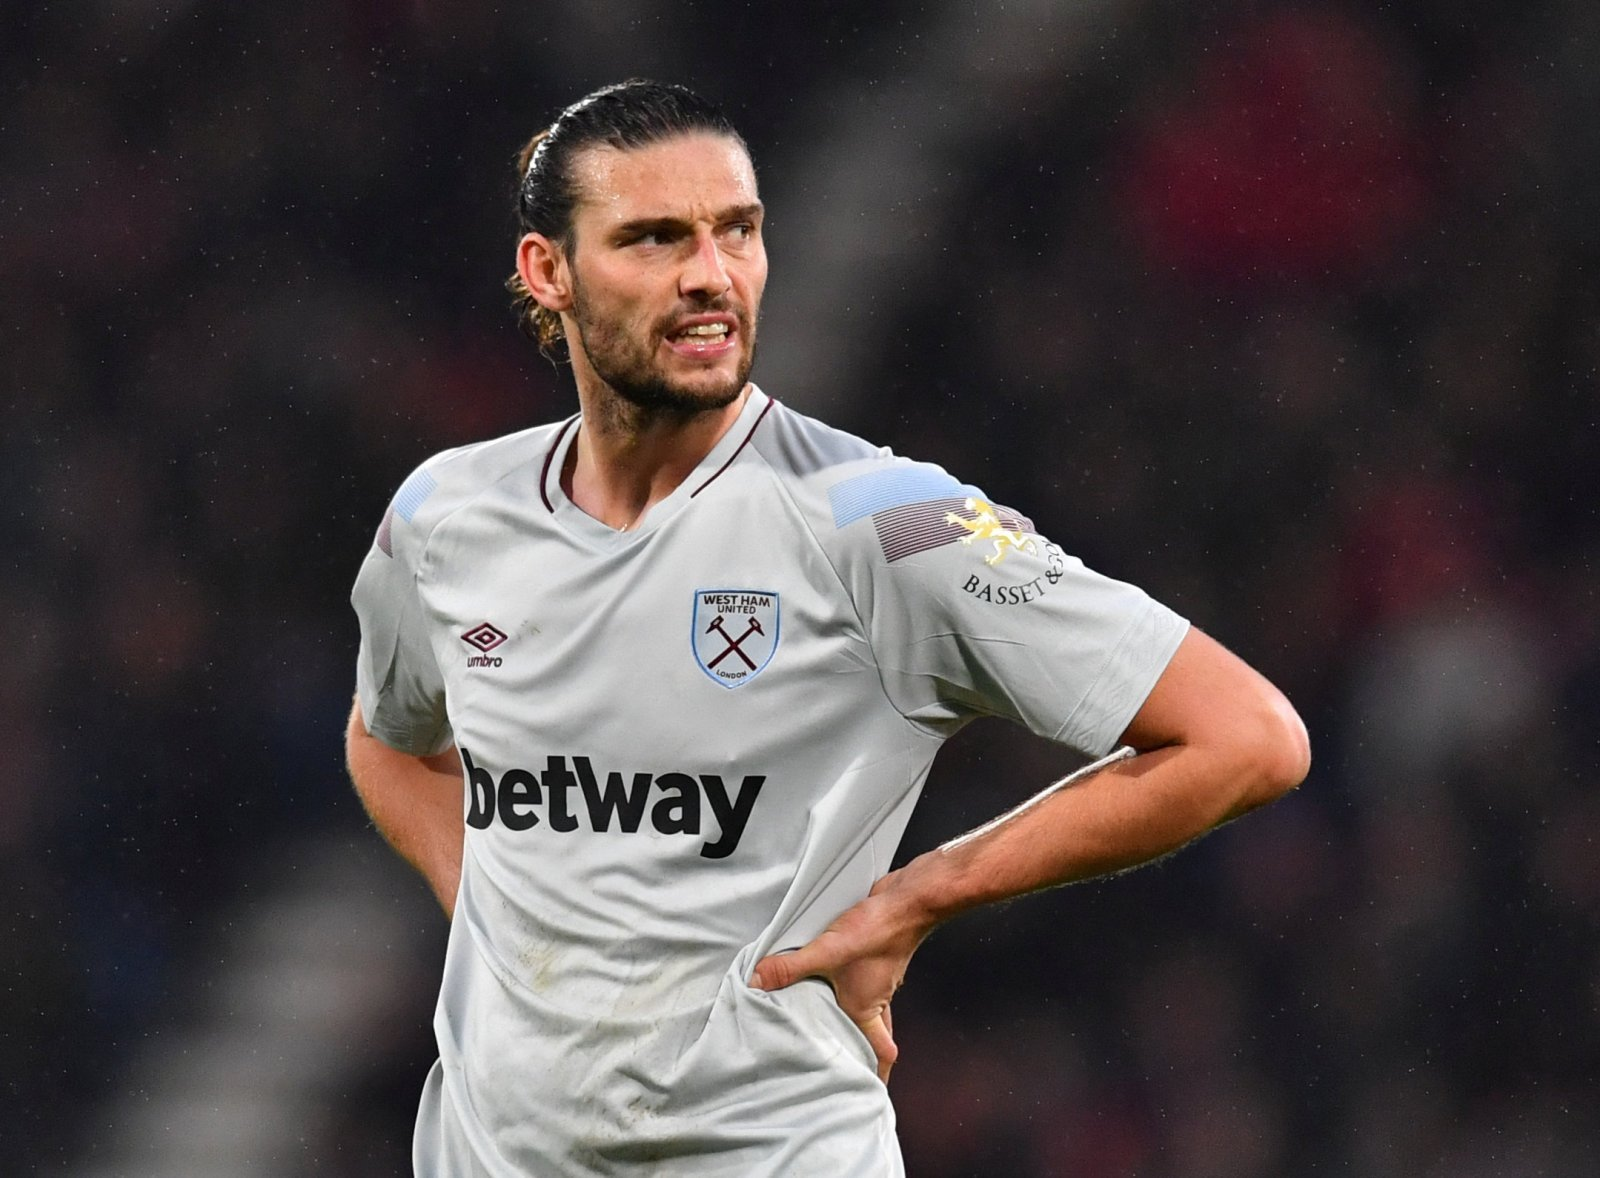 West Ham fans thank Andy Carroll as his contract comes to an end